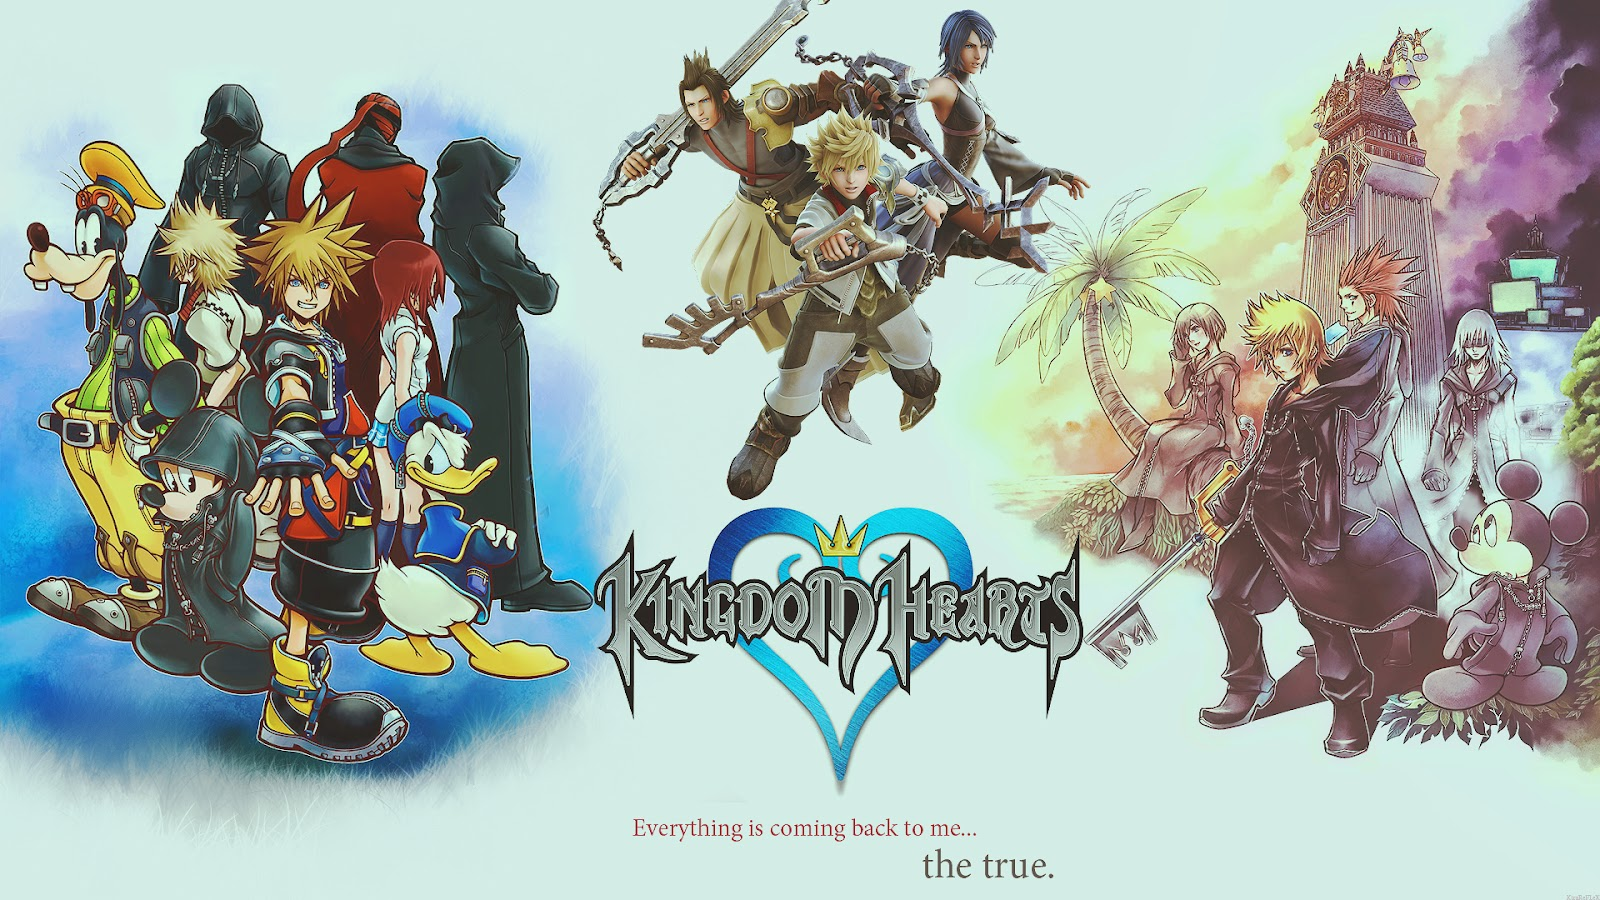 More Cool Kingdom Hearts Wallpapers 1600x900